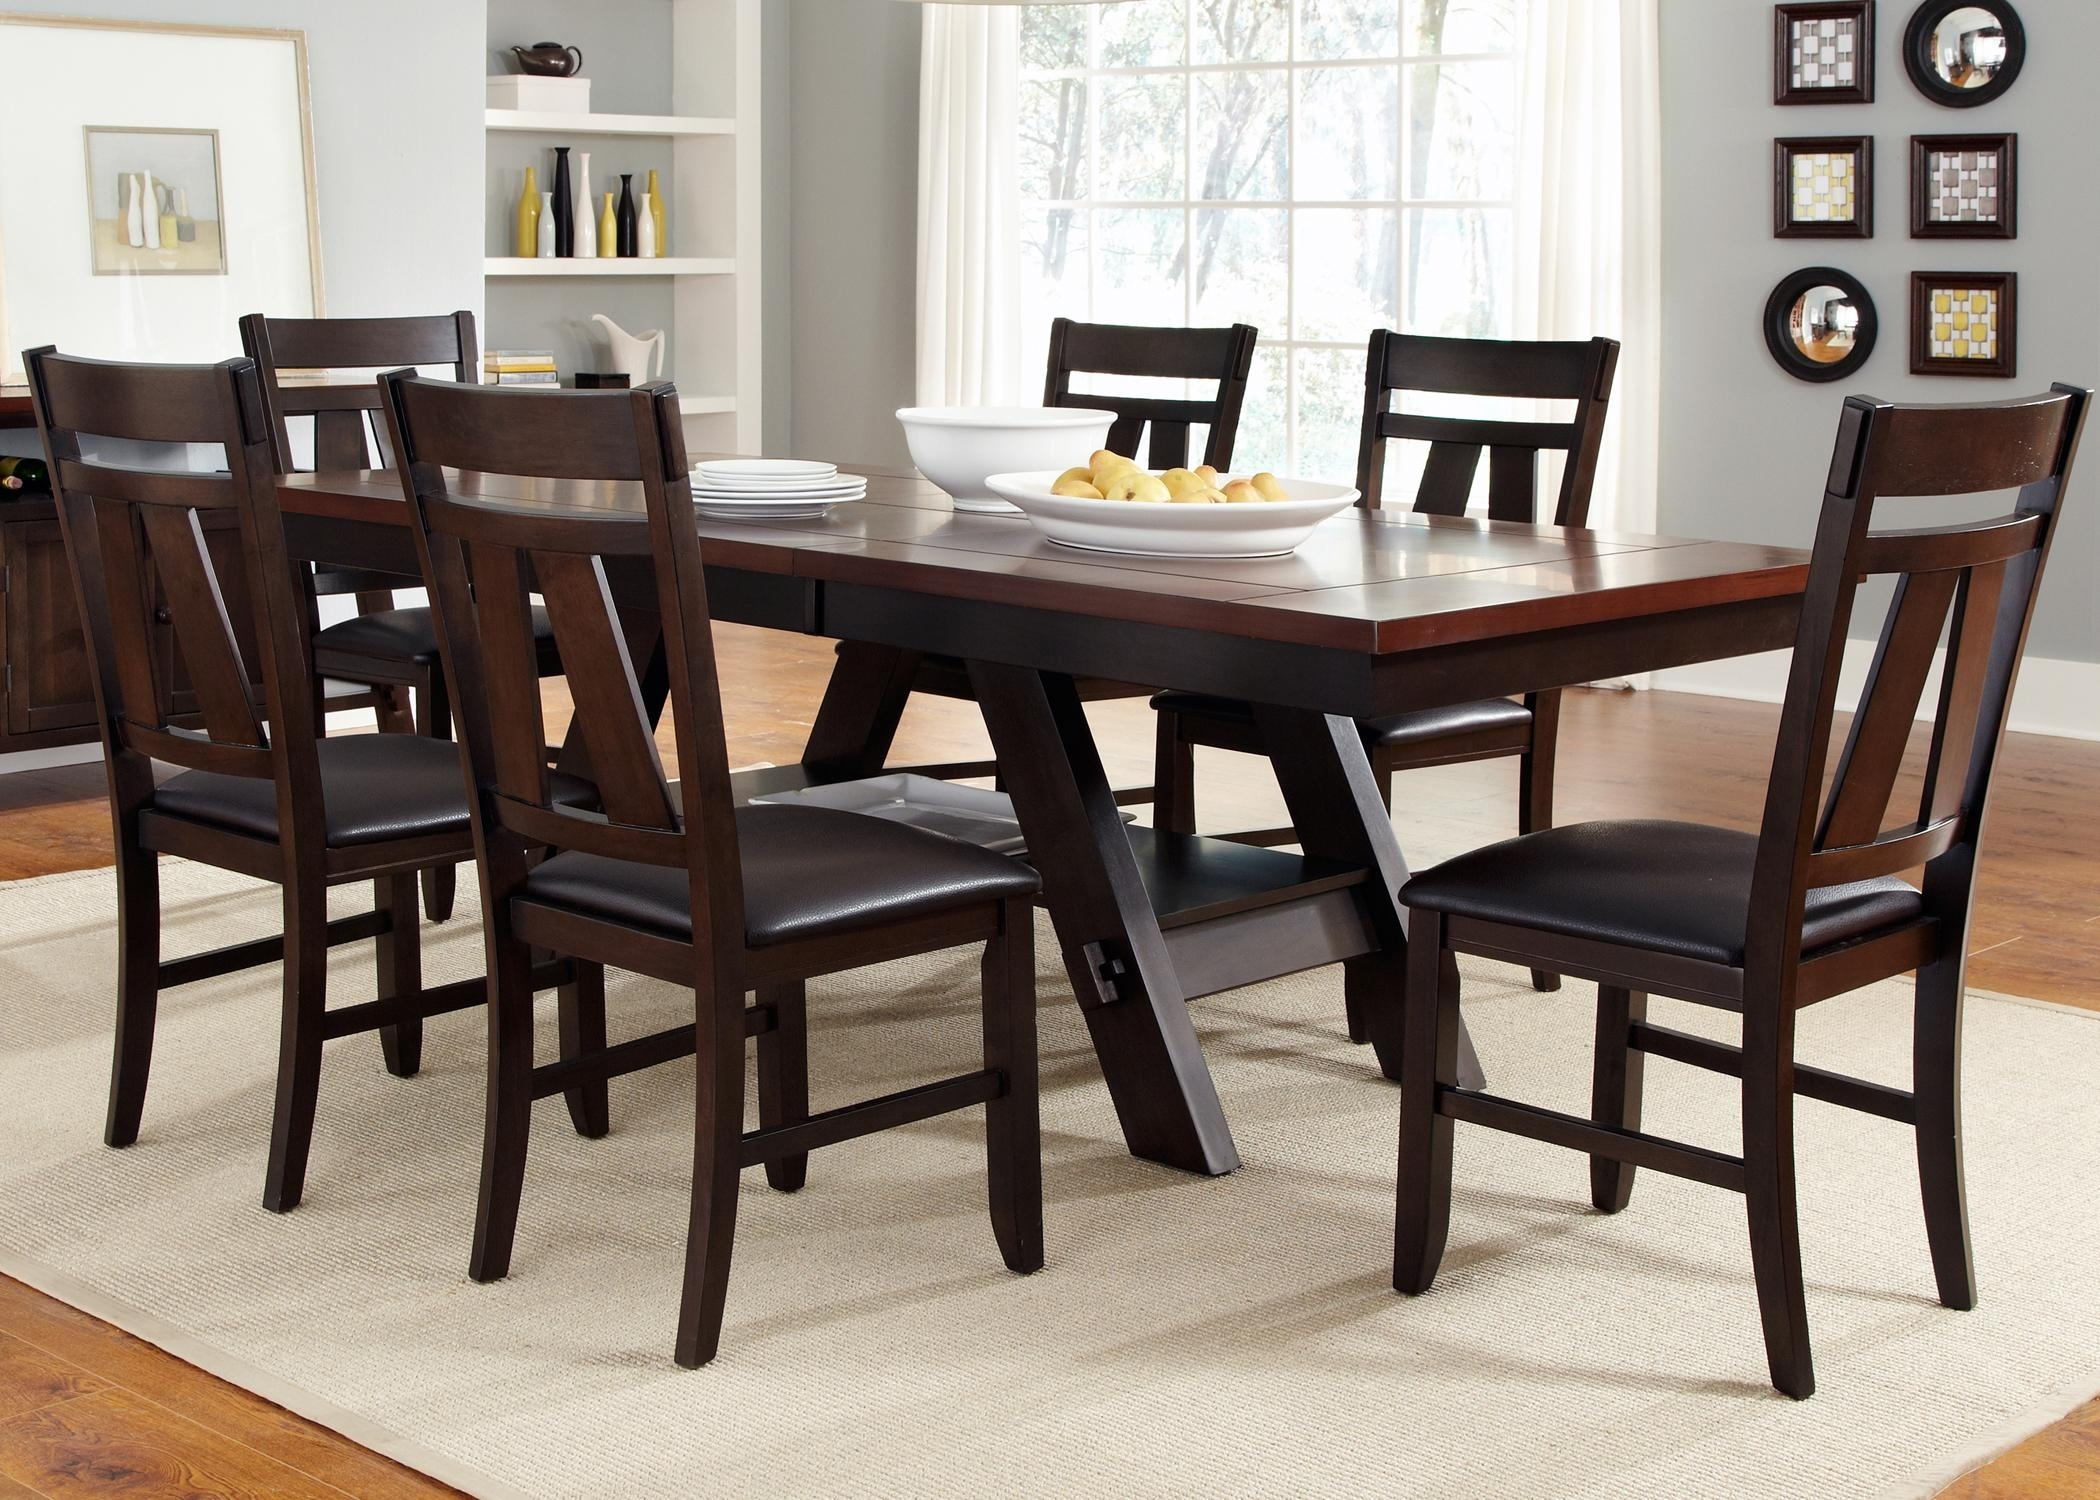 7 Piece Rectangular Trestle Table And Splat Back Chairs Set In Most Popular Parquet 7 Piece Dining Sets (View 13 of 20)